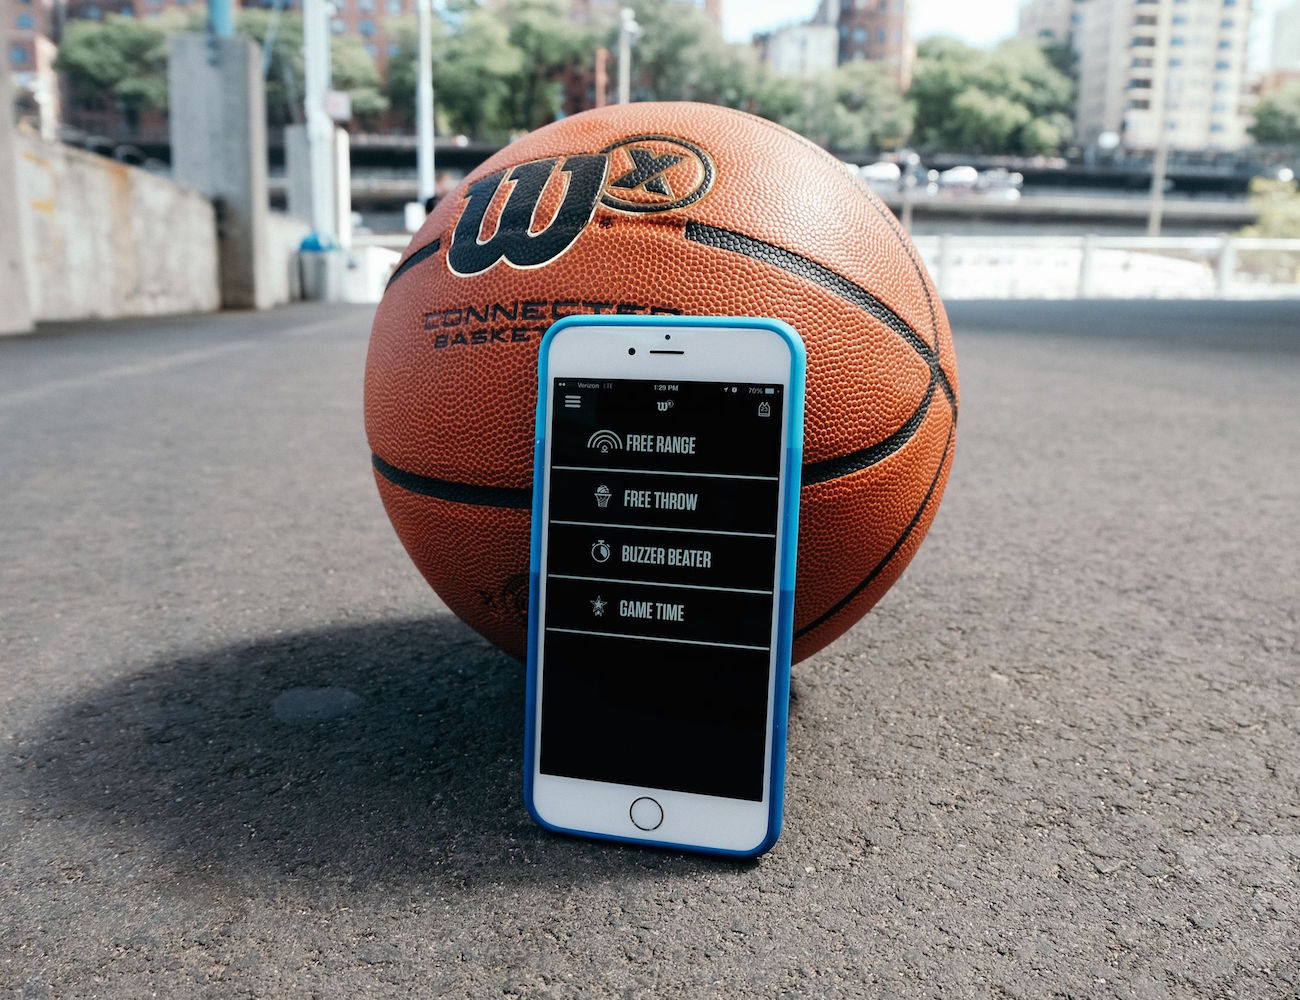 Wilson+X+Connected+Basketball+%26%238211%3B+Track+Your+Shooting+Stats+From+Your+Phone